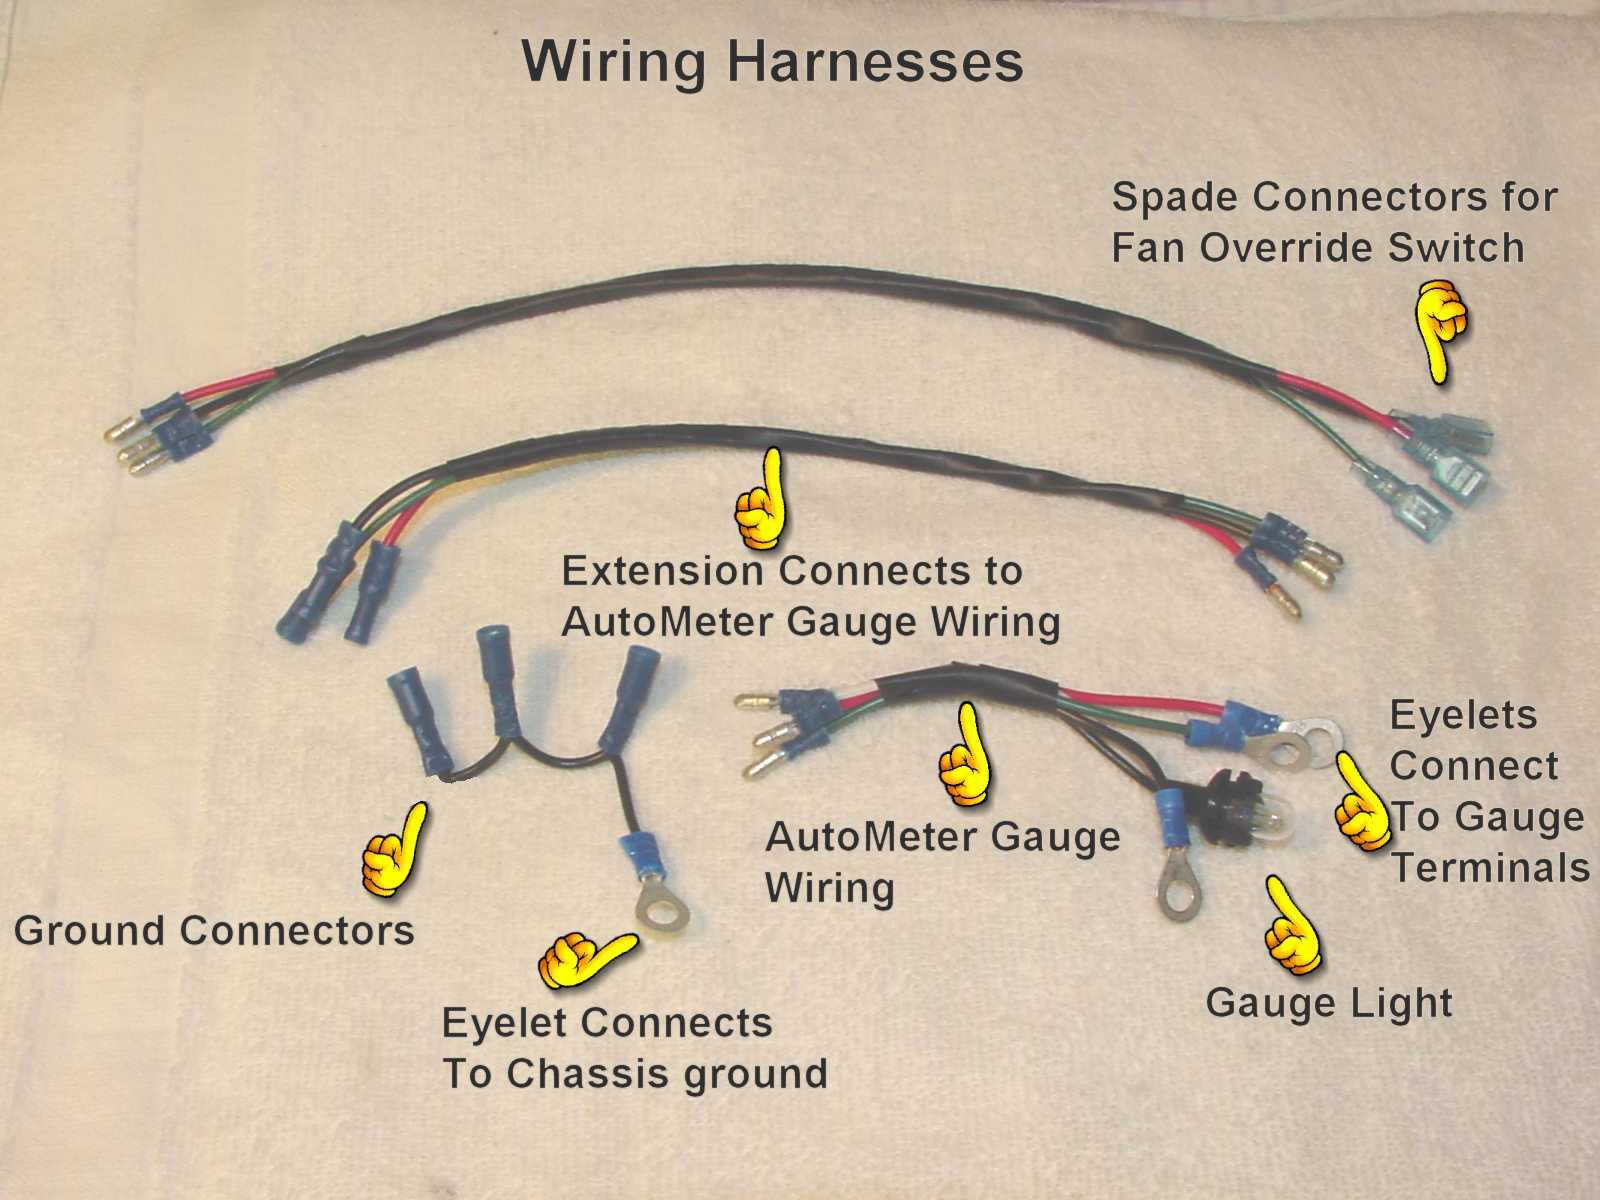 water temperature gauge ls1 fan relay wiring diagram fz1 manual fan switch installation